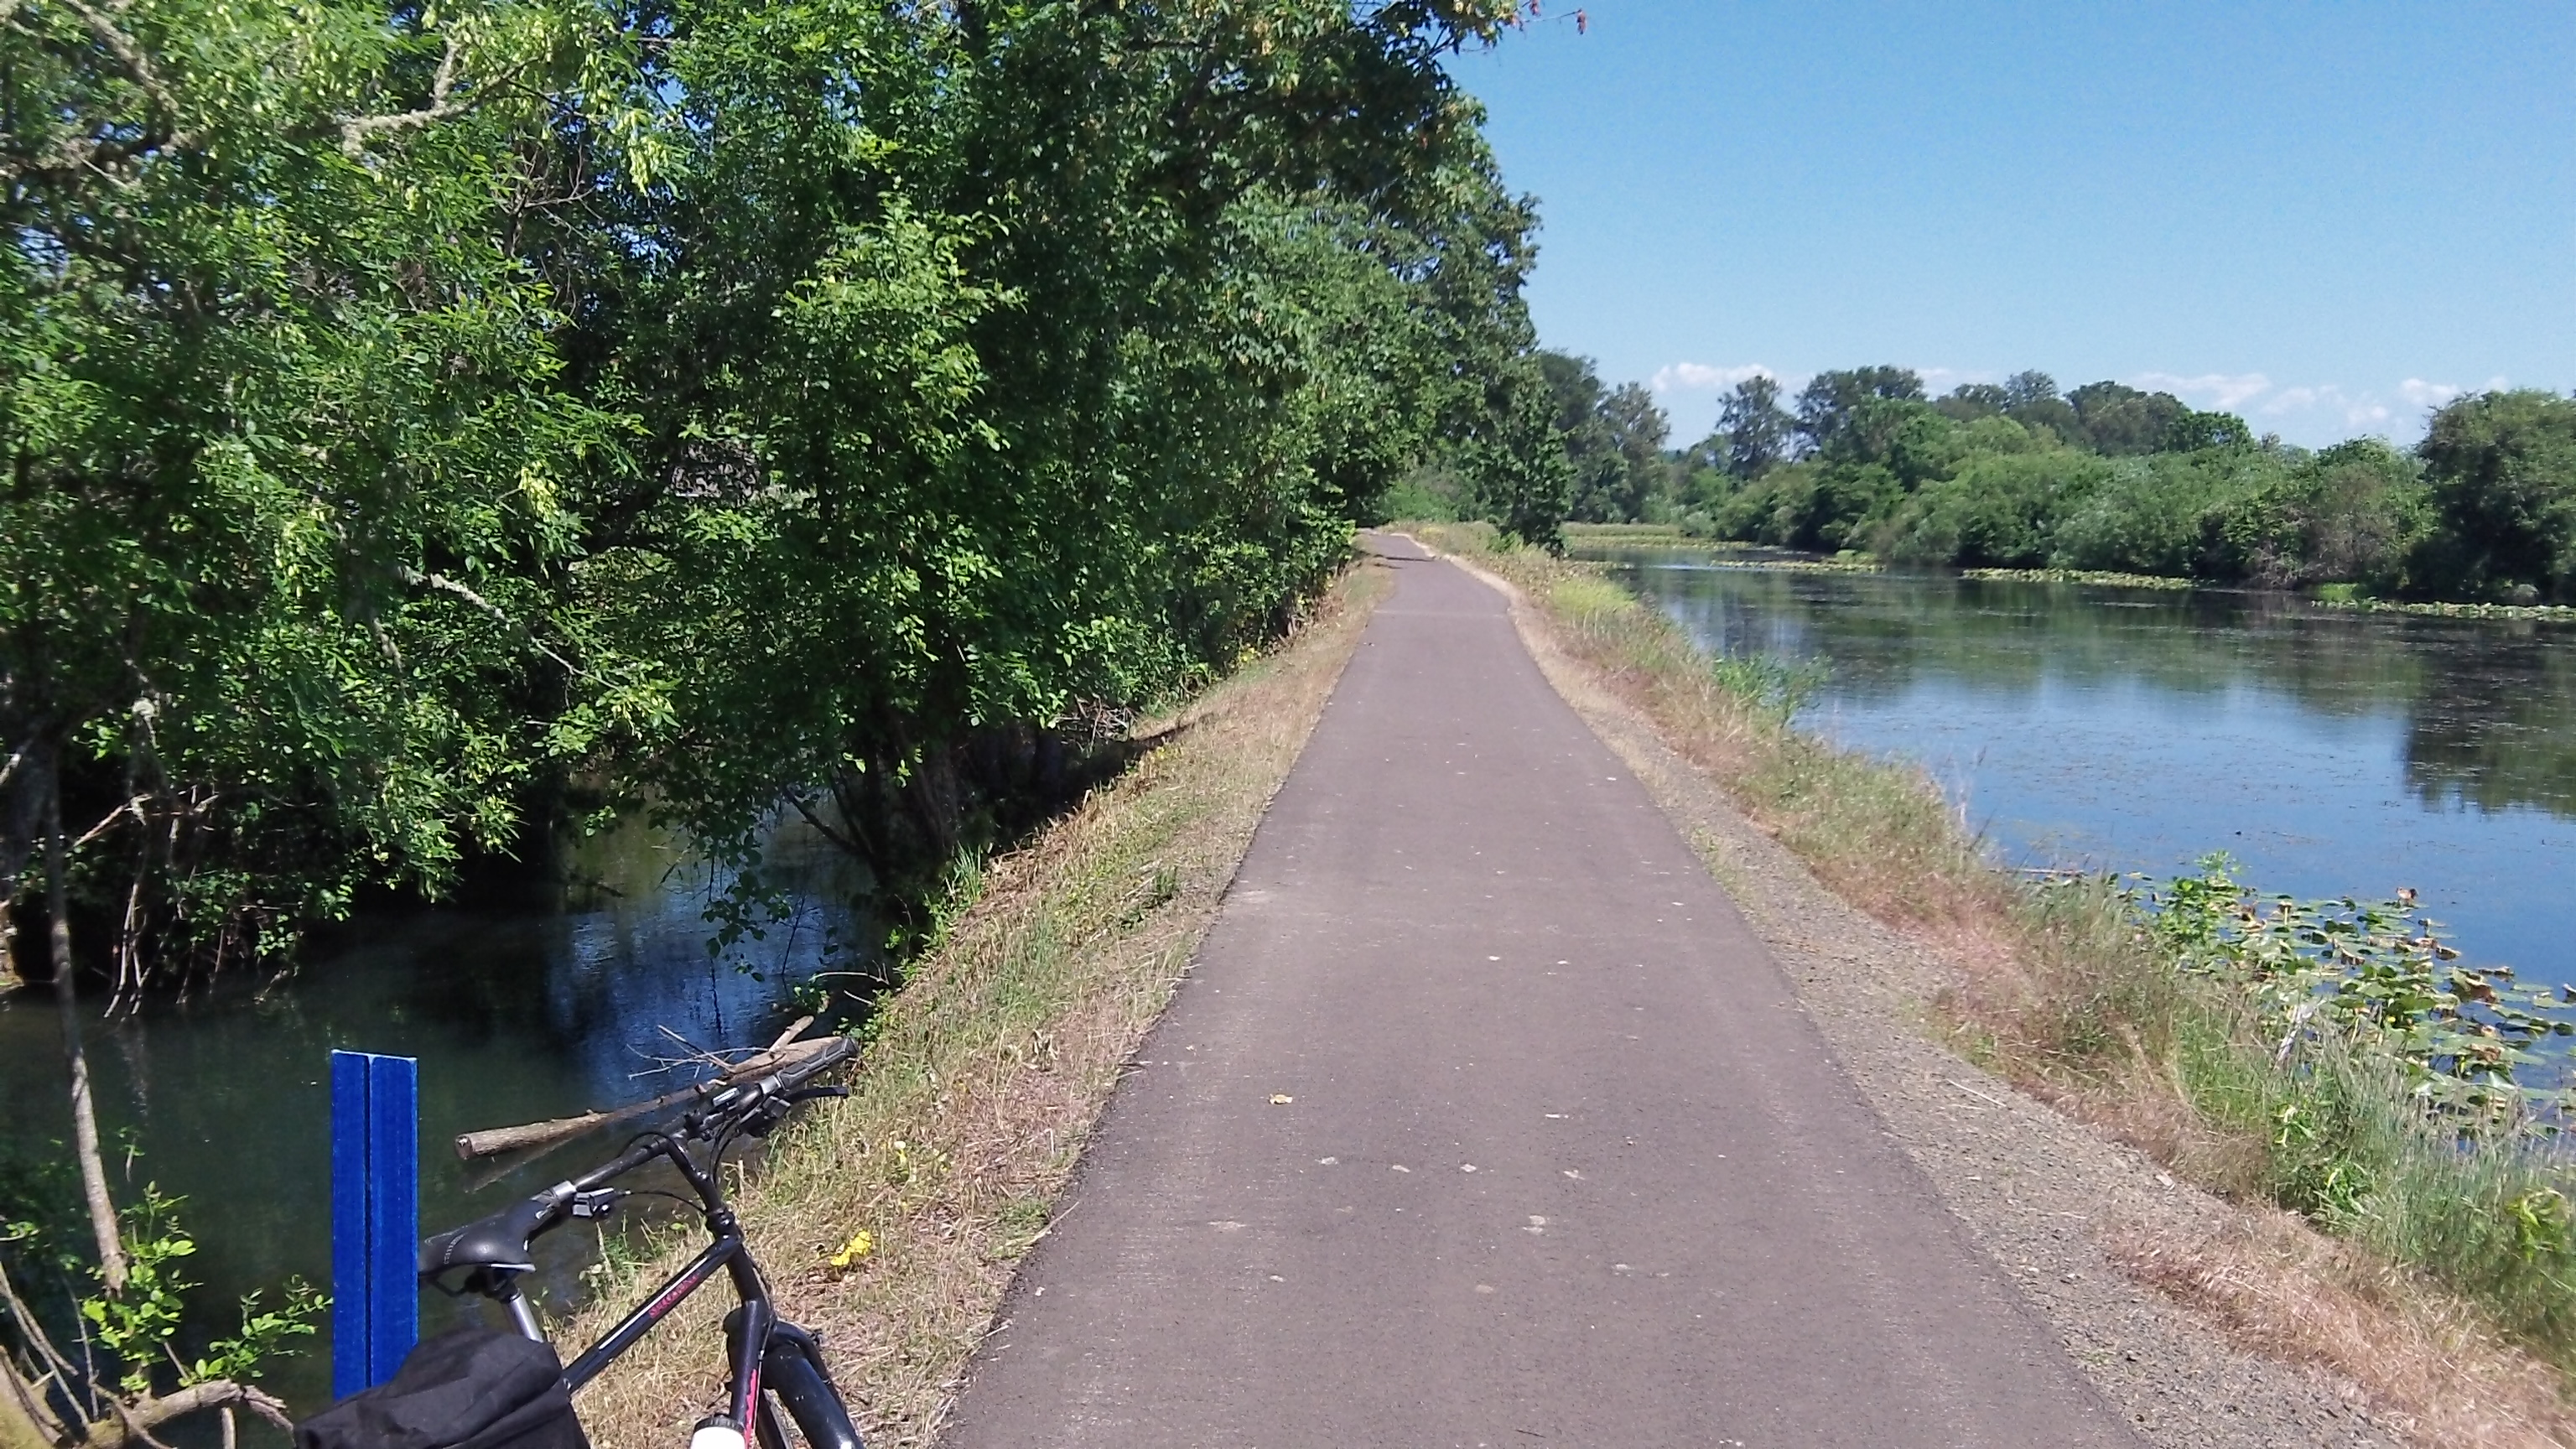 The Albany Santiam Canal on the left; Cheadle Lake on the right f the embankment and path.